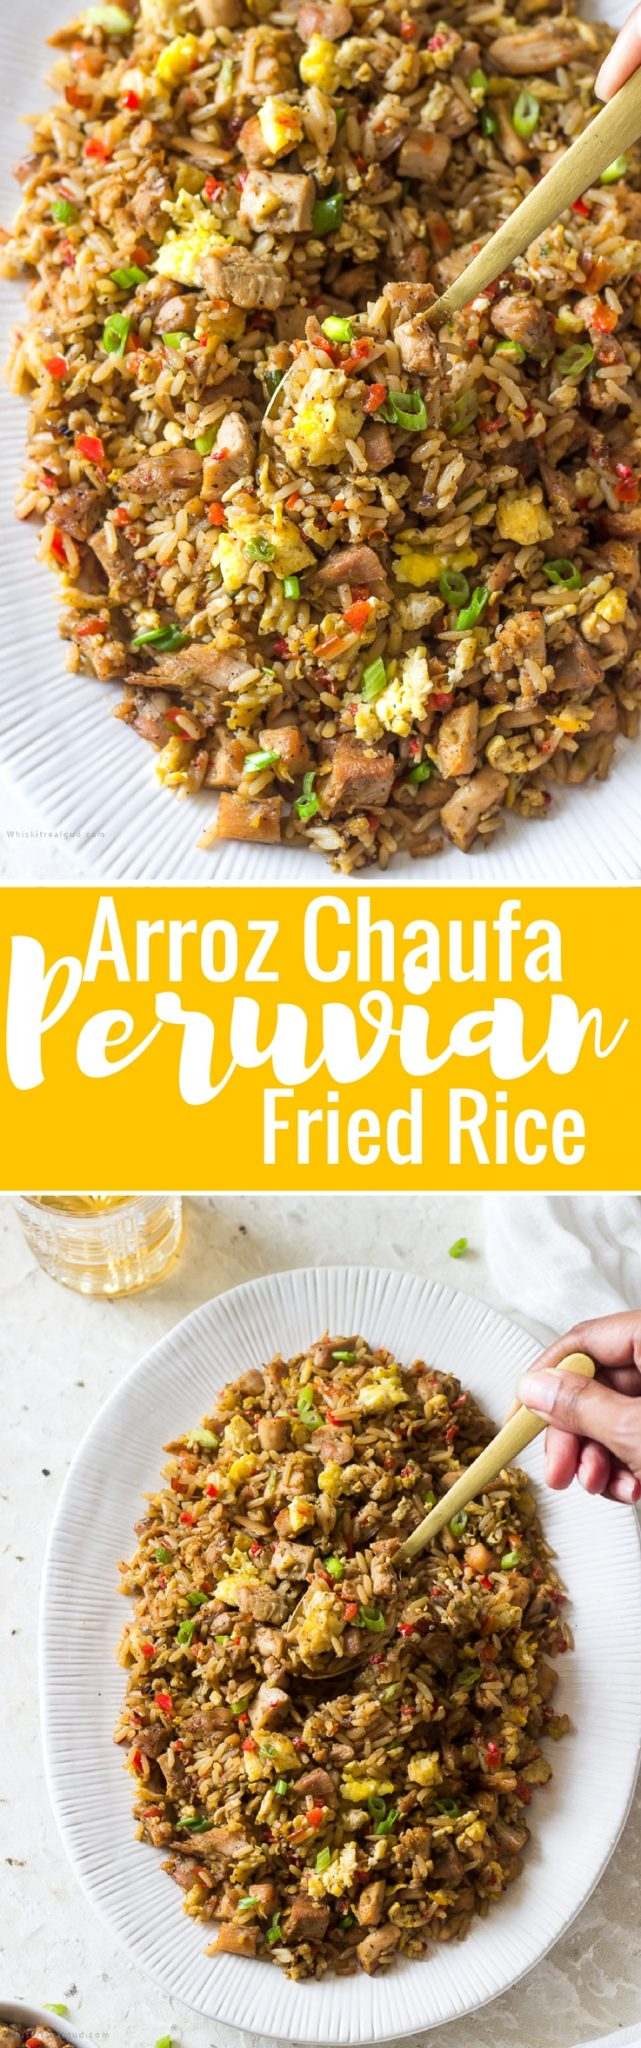 Peruvian fried rice